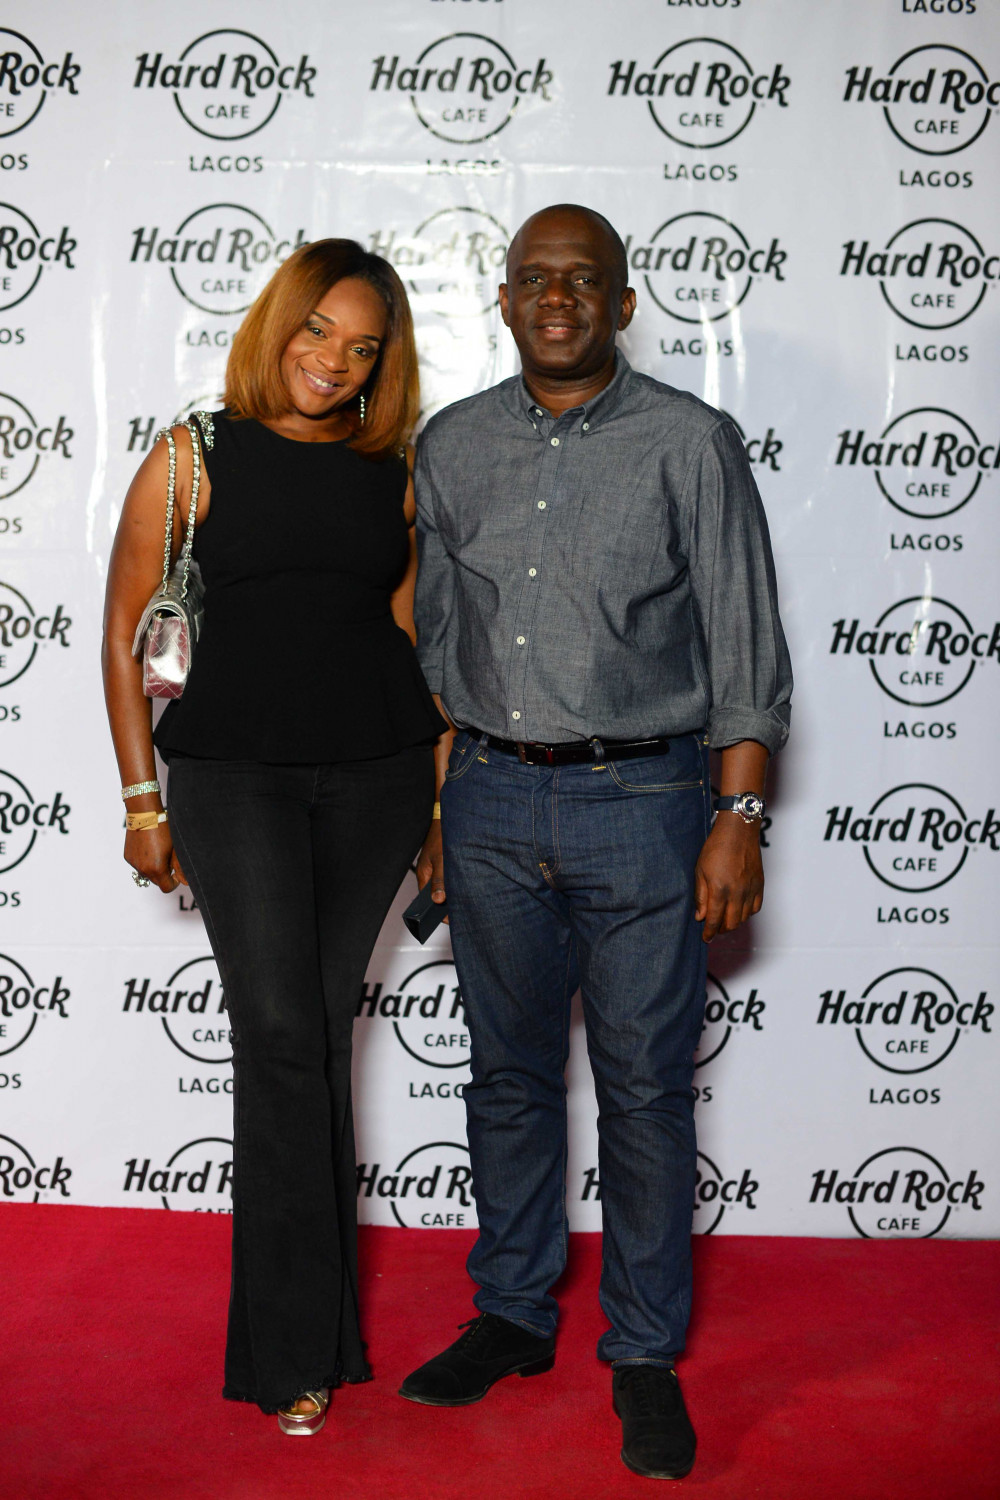 Hard Rock Cafe Lagos Launch BellaNaija DSC_0264